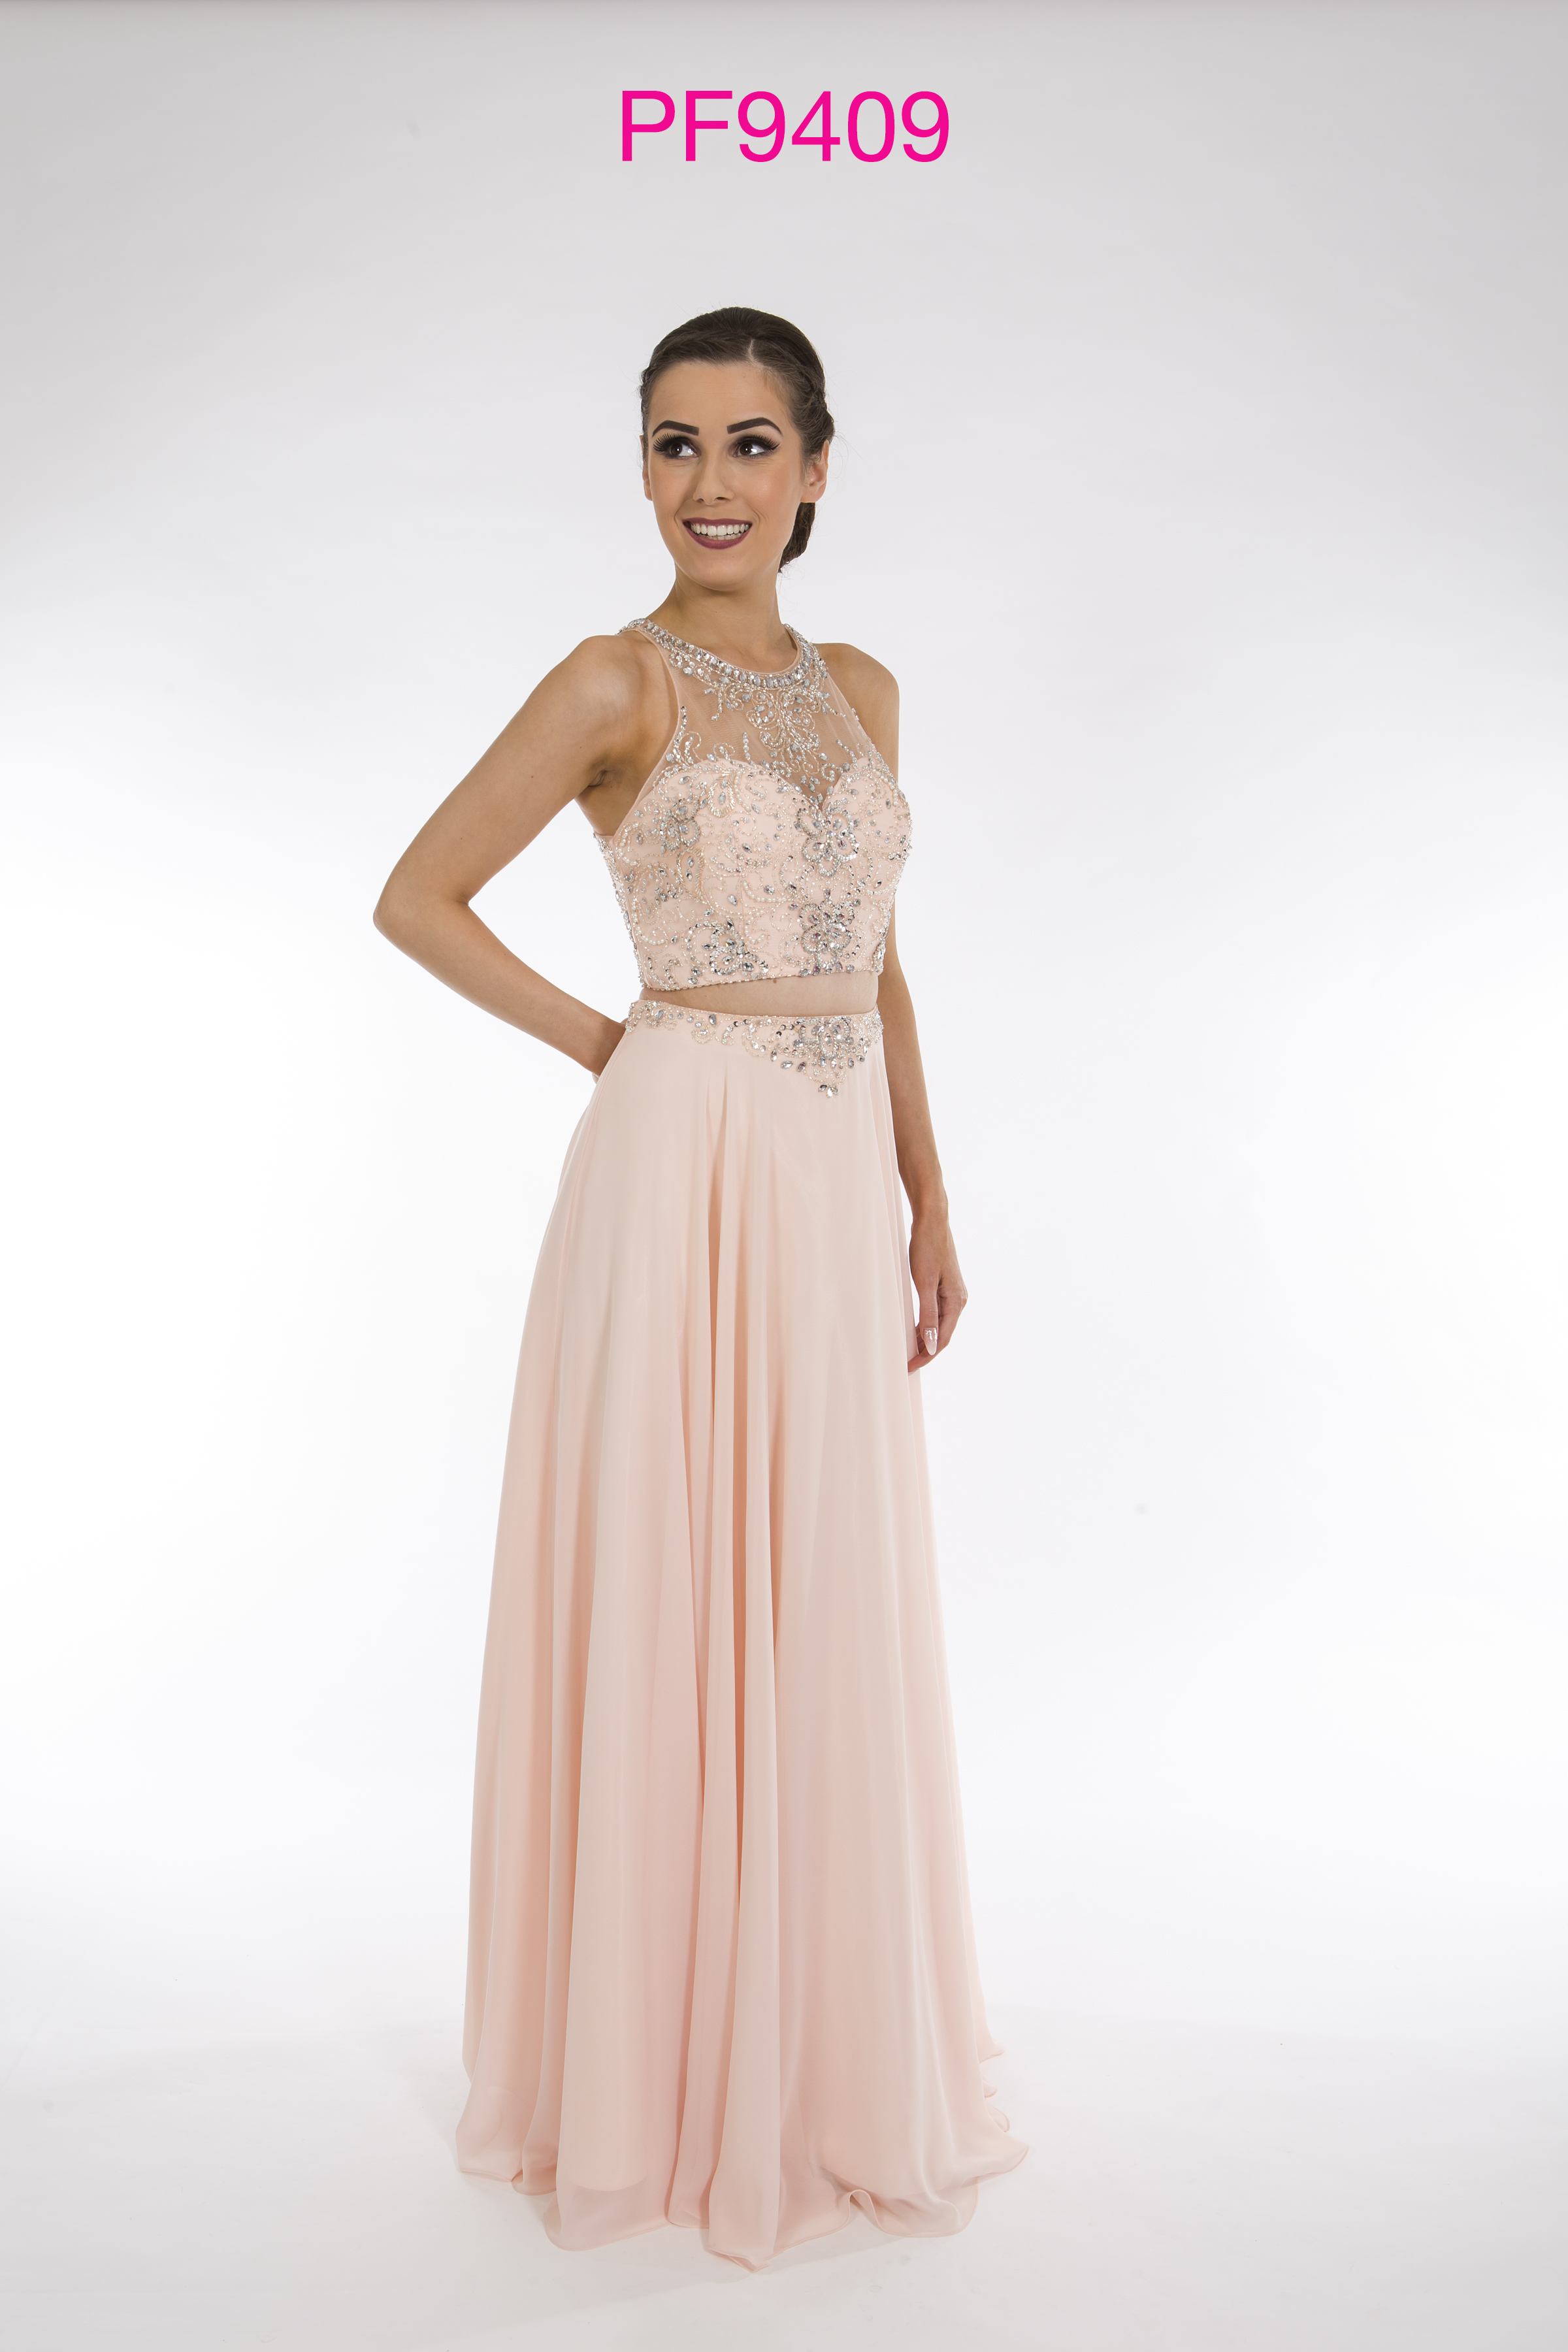 Prom Frocks PF9409 Blush Prom Dress - Prom Frocks UK Prom Dresses